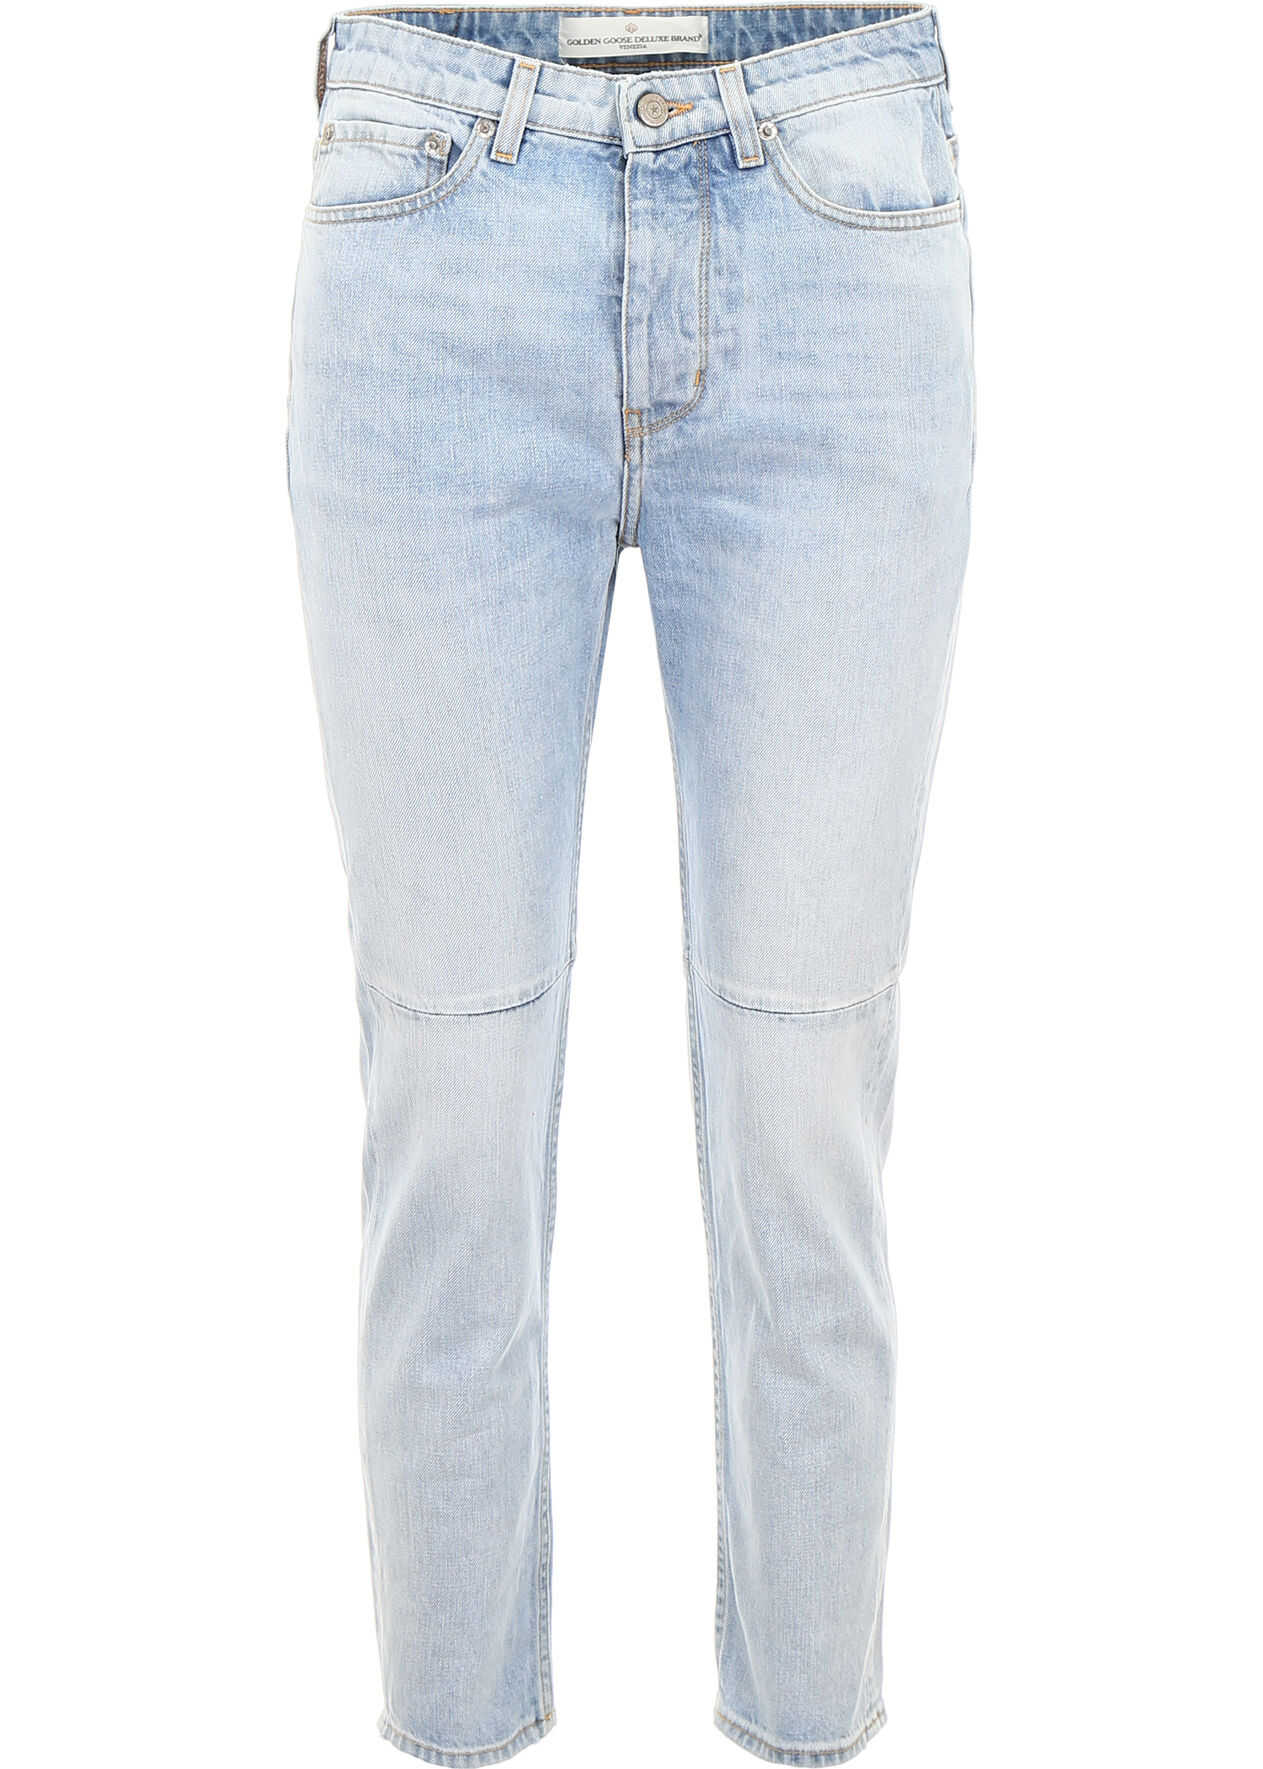 Golden Goose Happy Jeans LIGHT BLUE WASH